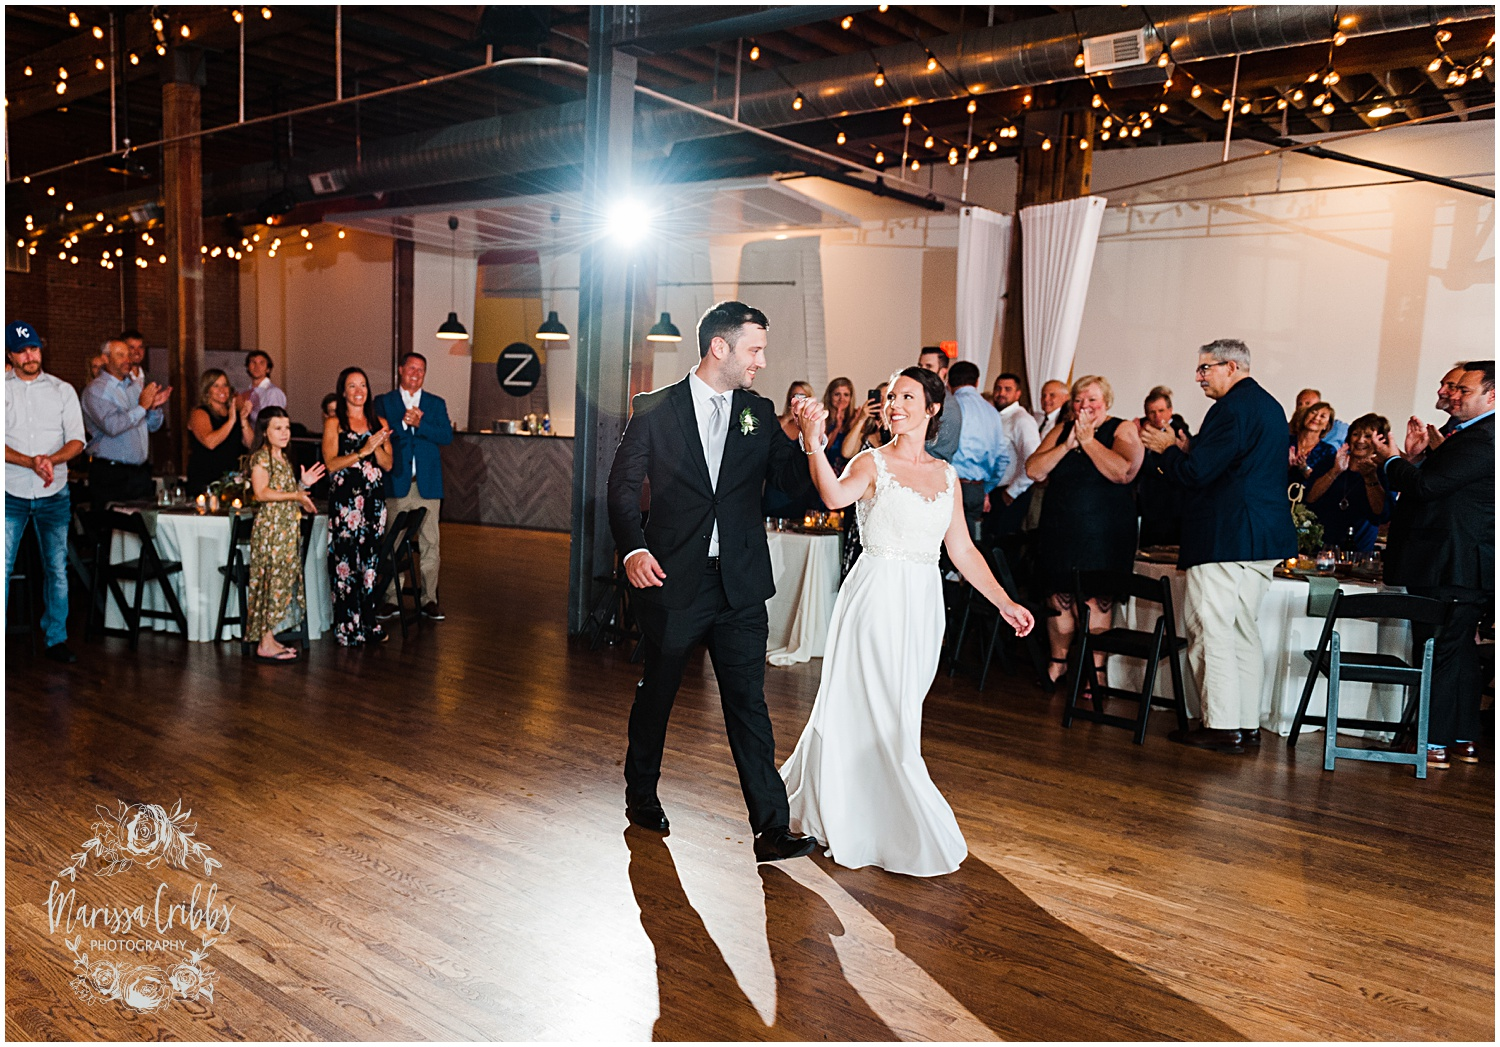 KELLY & MITCH MARRIED BLOG | MARISSA CRIBBS PHOTOGRAPHY | THE EVERLY EVENT SPACE_8901.jpg